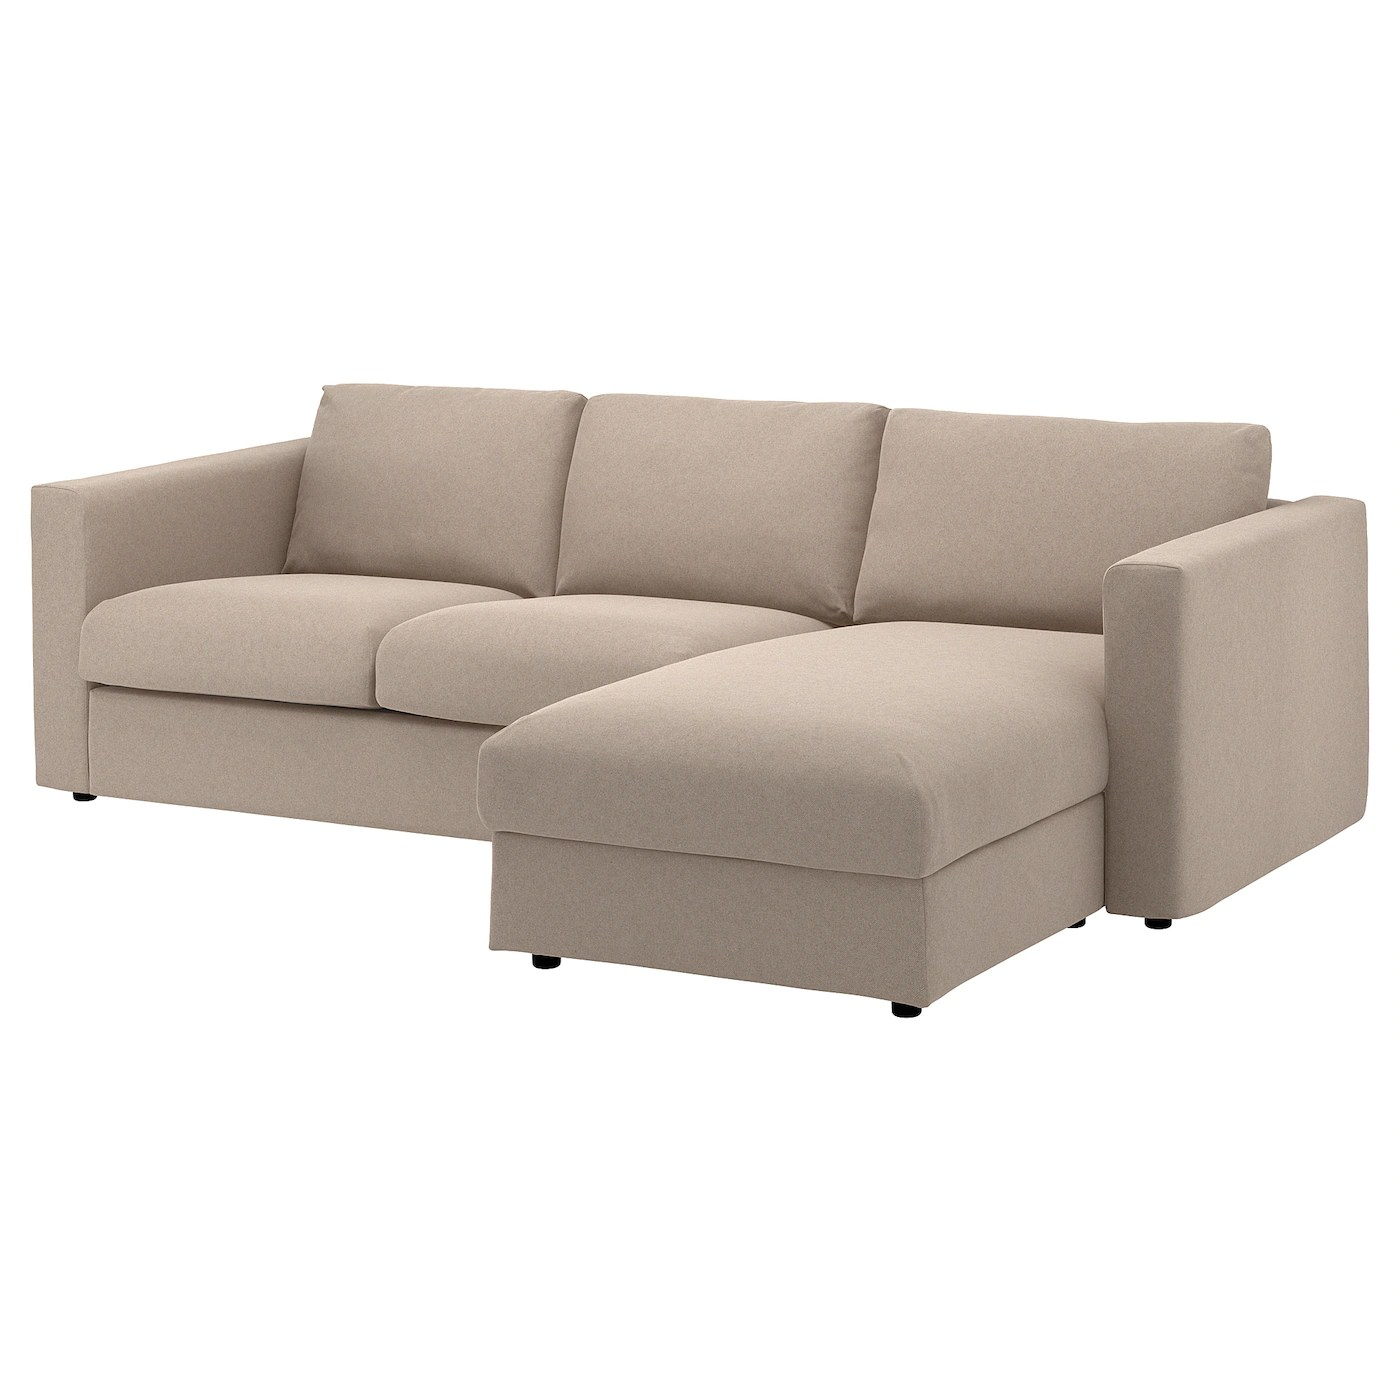 Ikea Bettwäsche Beige Vimle 3 Seat Sofa With Chaise Longue Tallmyra Beige Ikea